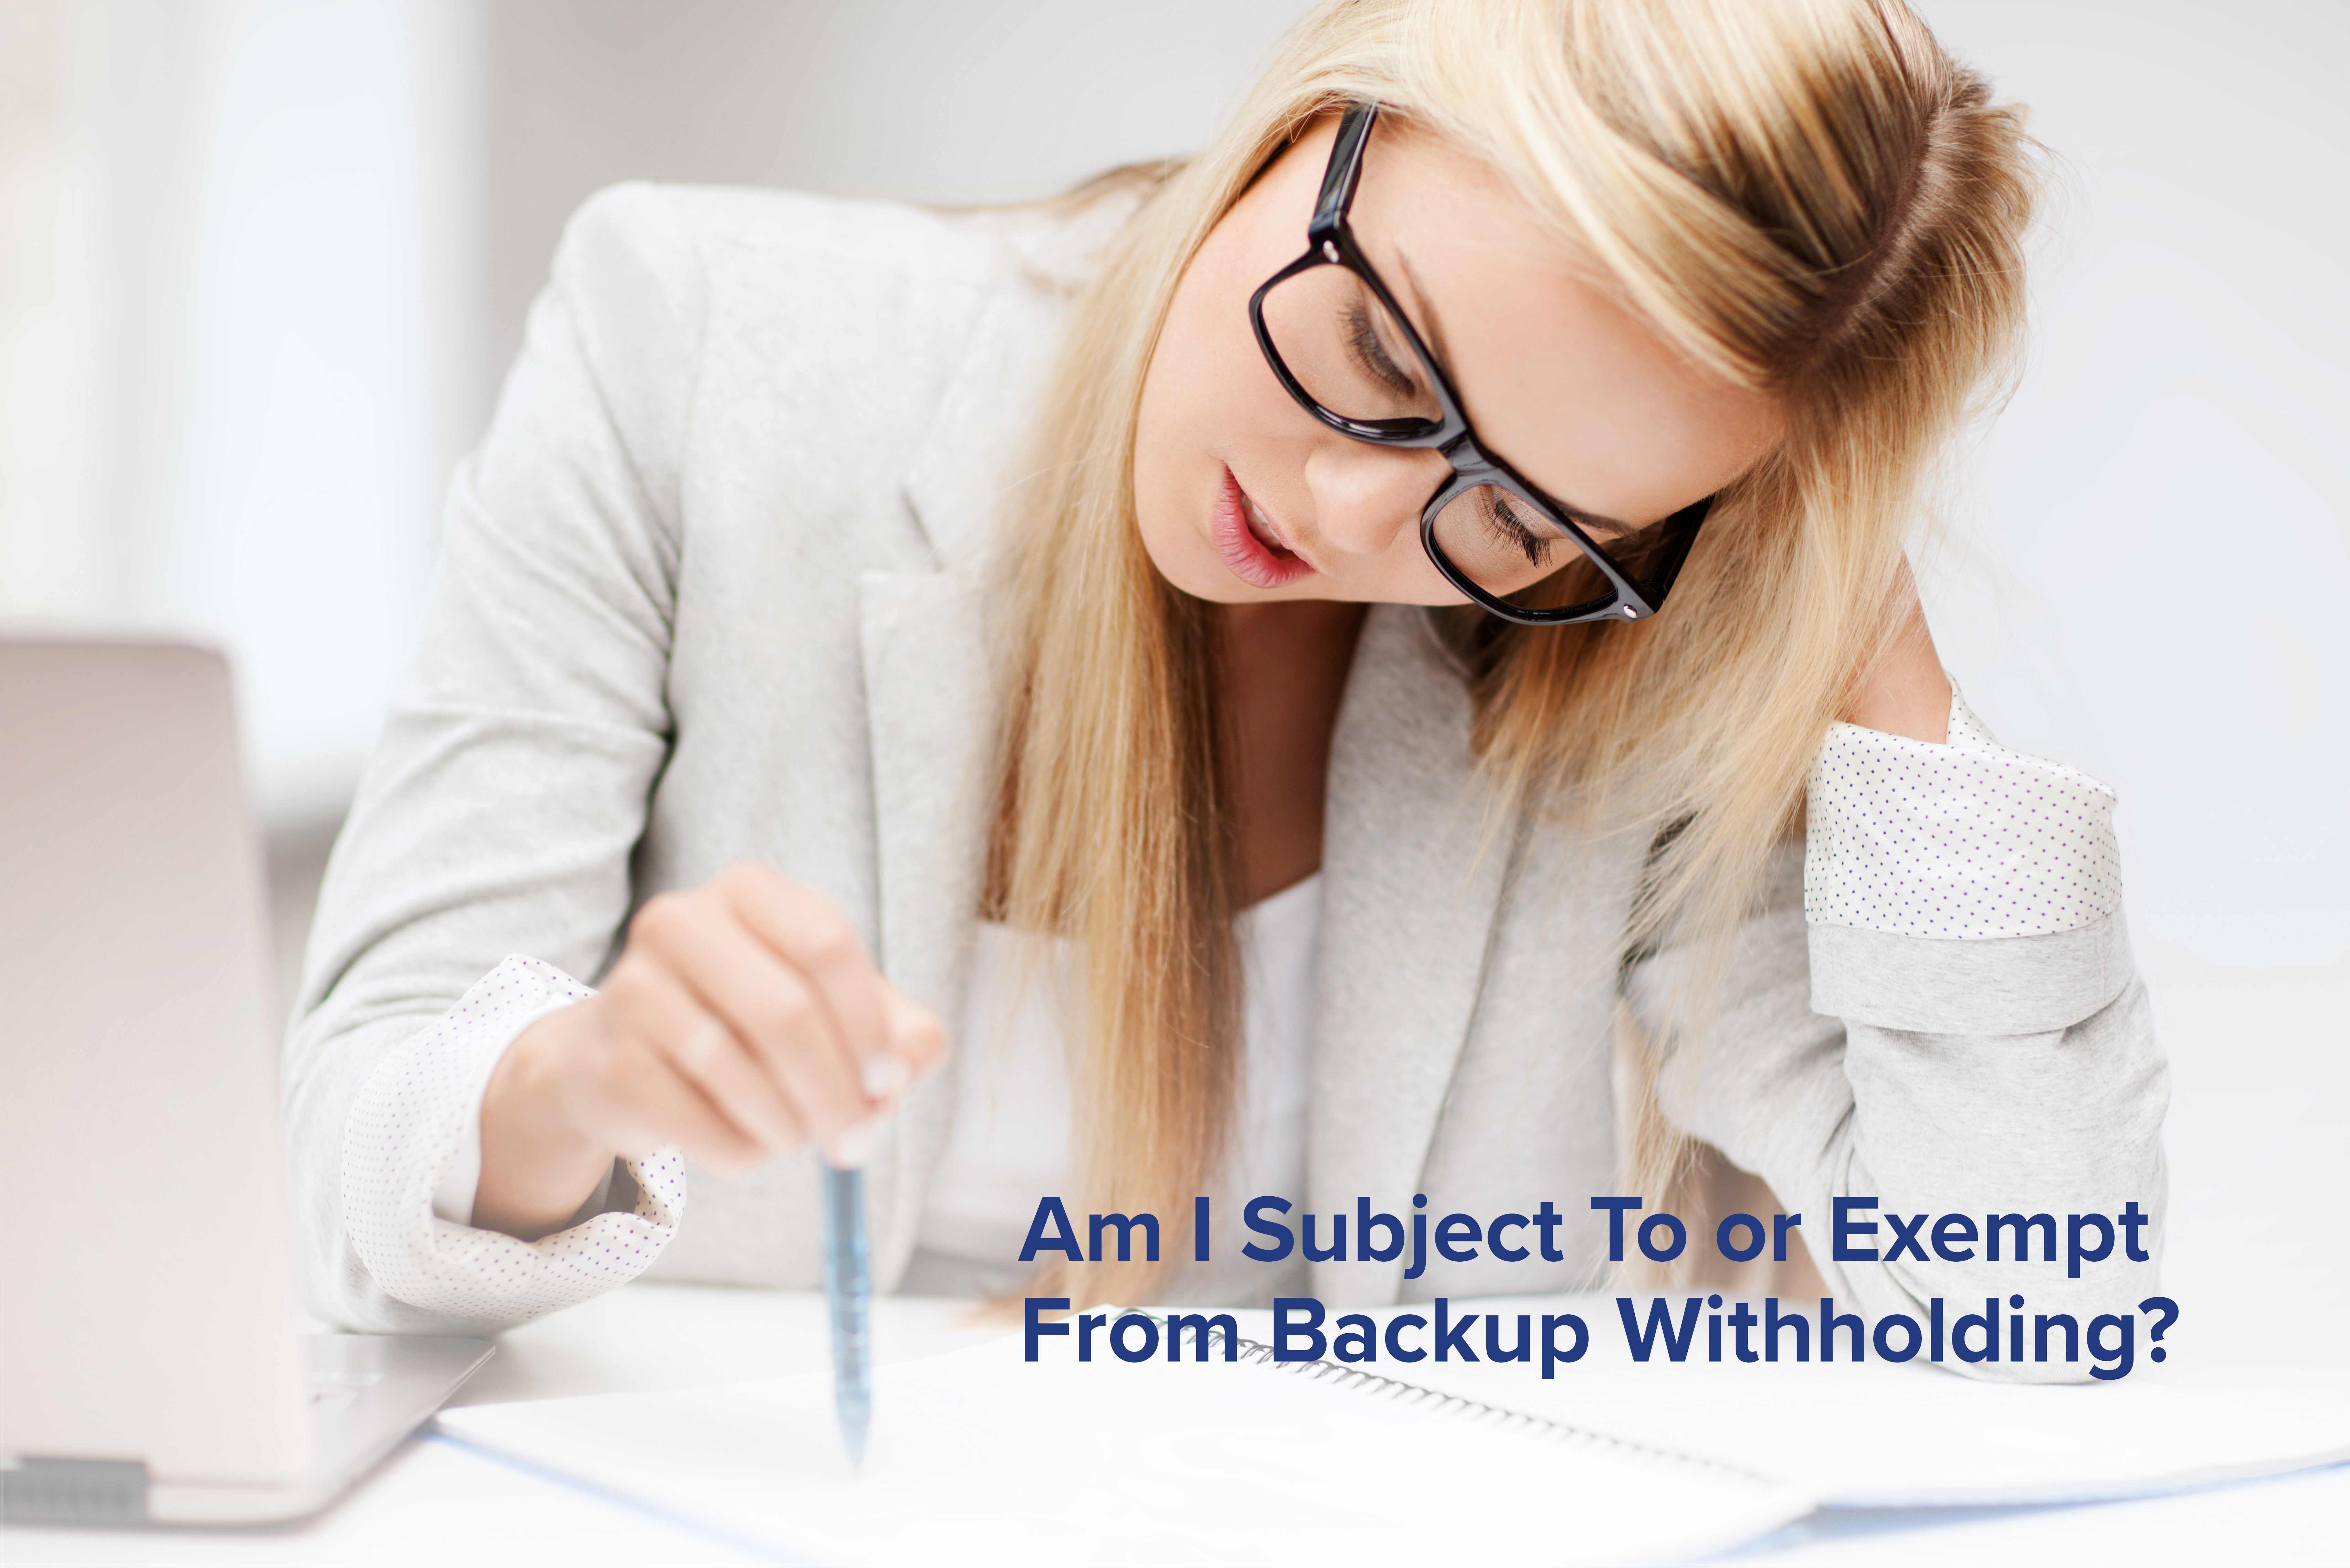 Am I Subject To or Exempt From Backup Withholding